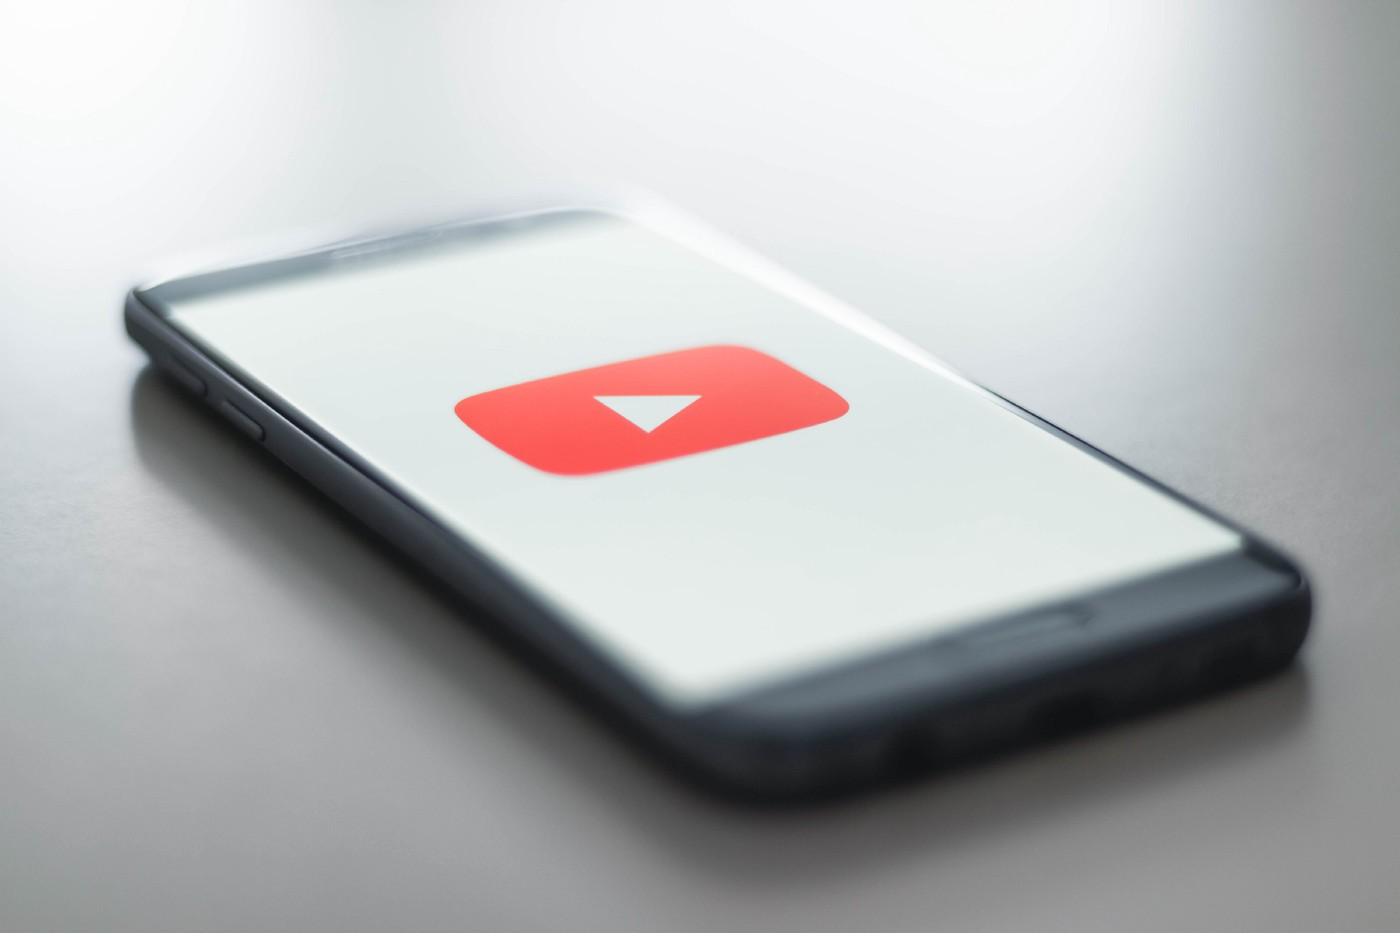 Phone displaying YouTube logo